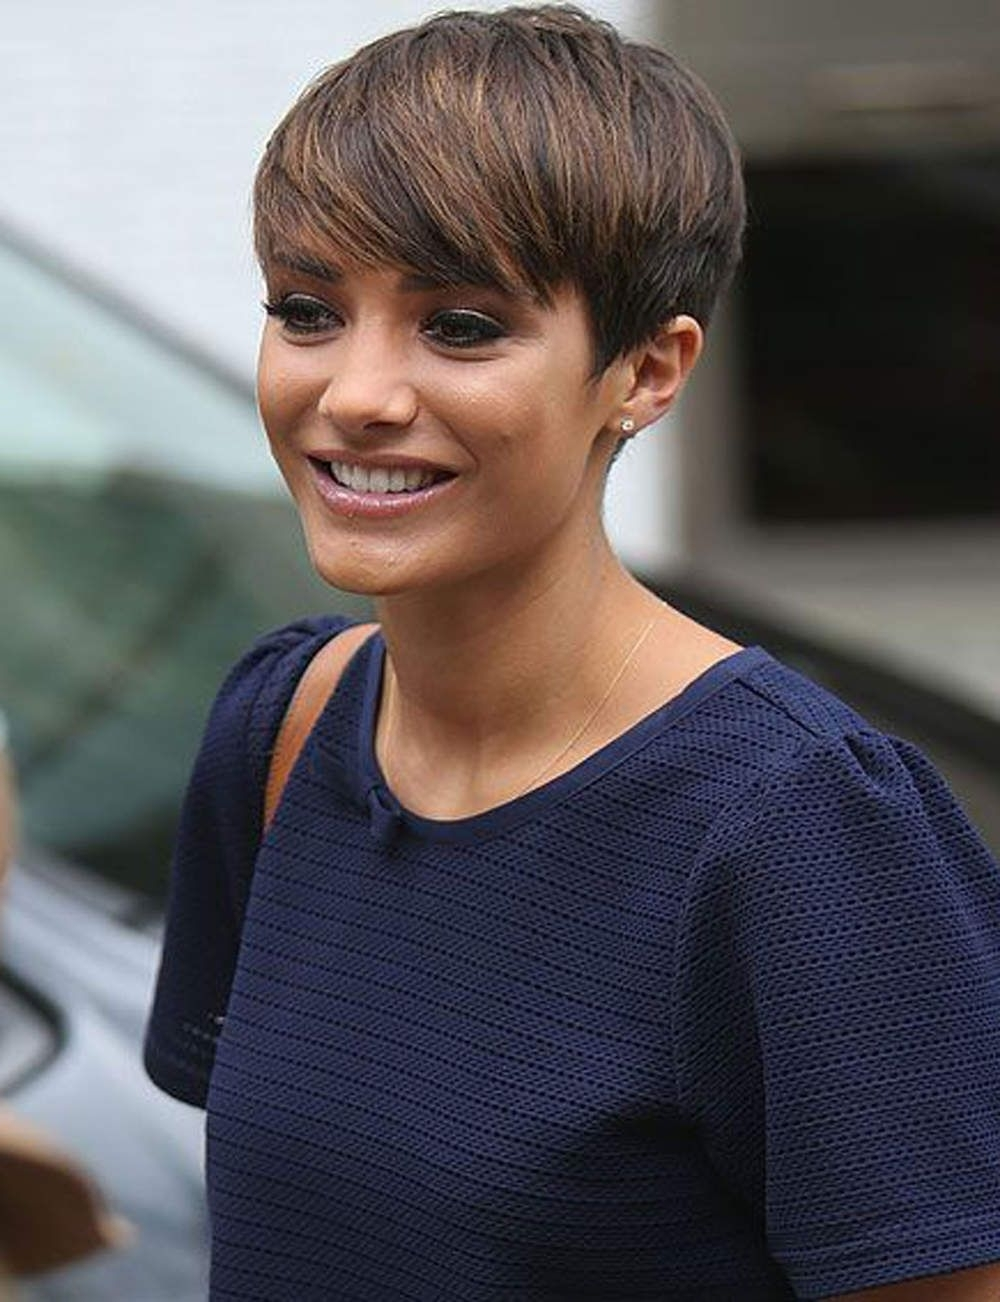 Vivacious Short Pixie Haircuts With Highlights   Hairdrome Intended For Most Recently Long Honey Blonde And Black Pixie Haircuts (View 13 of 15)